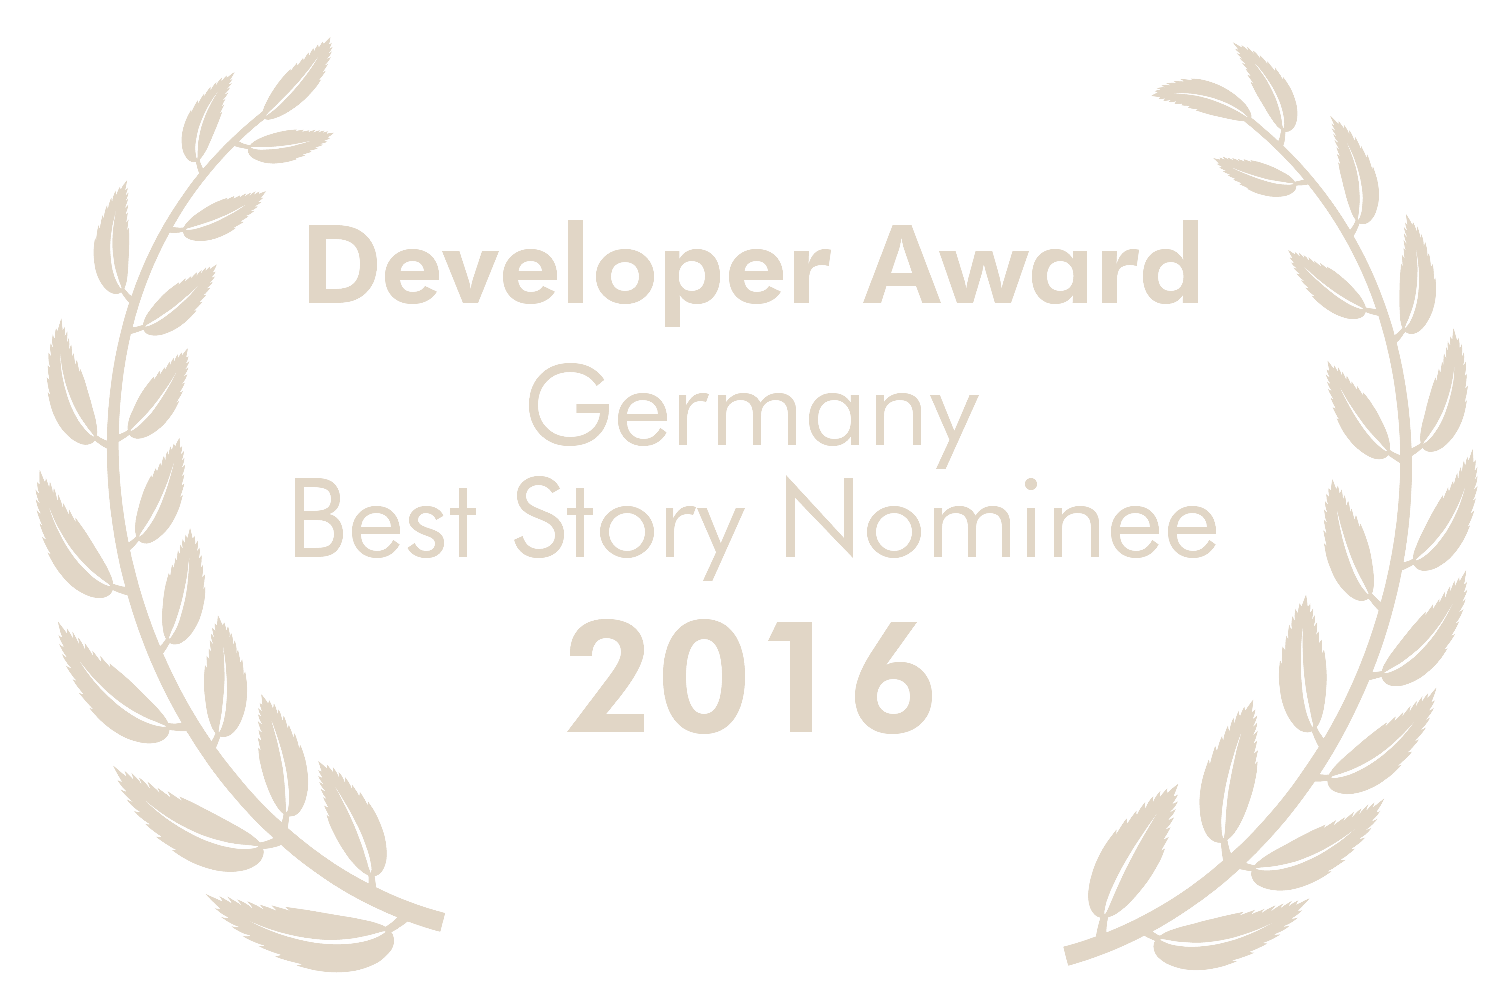 Nominated for Deutscher Entwicklerpreis - Best Story